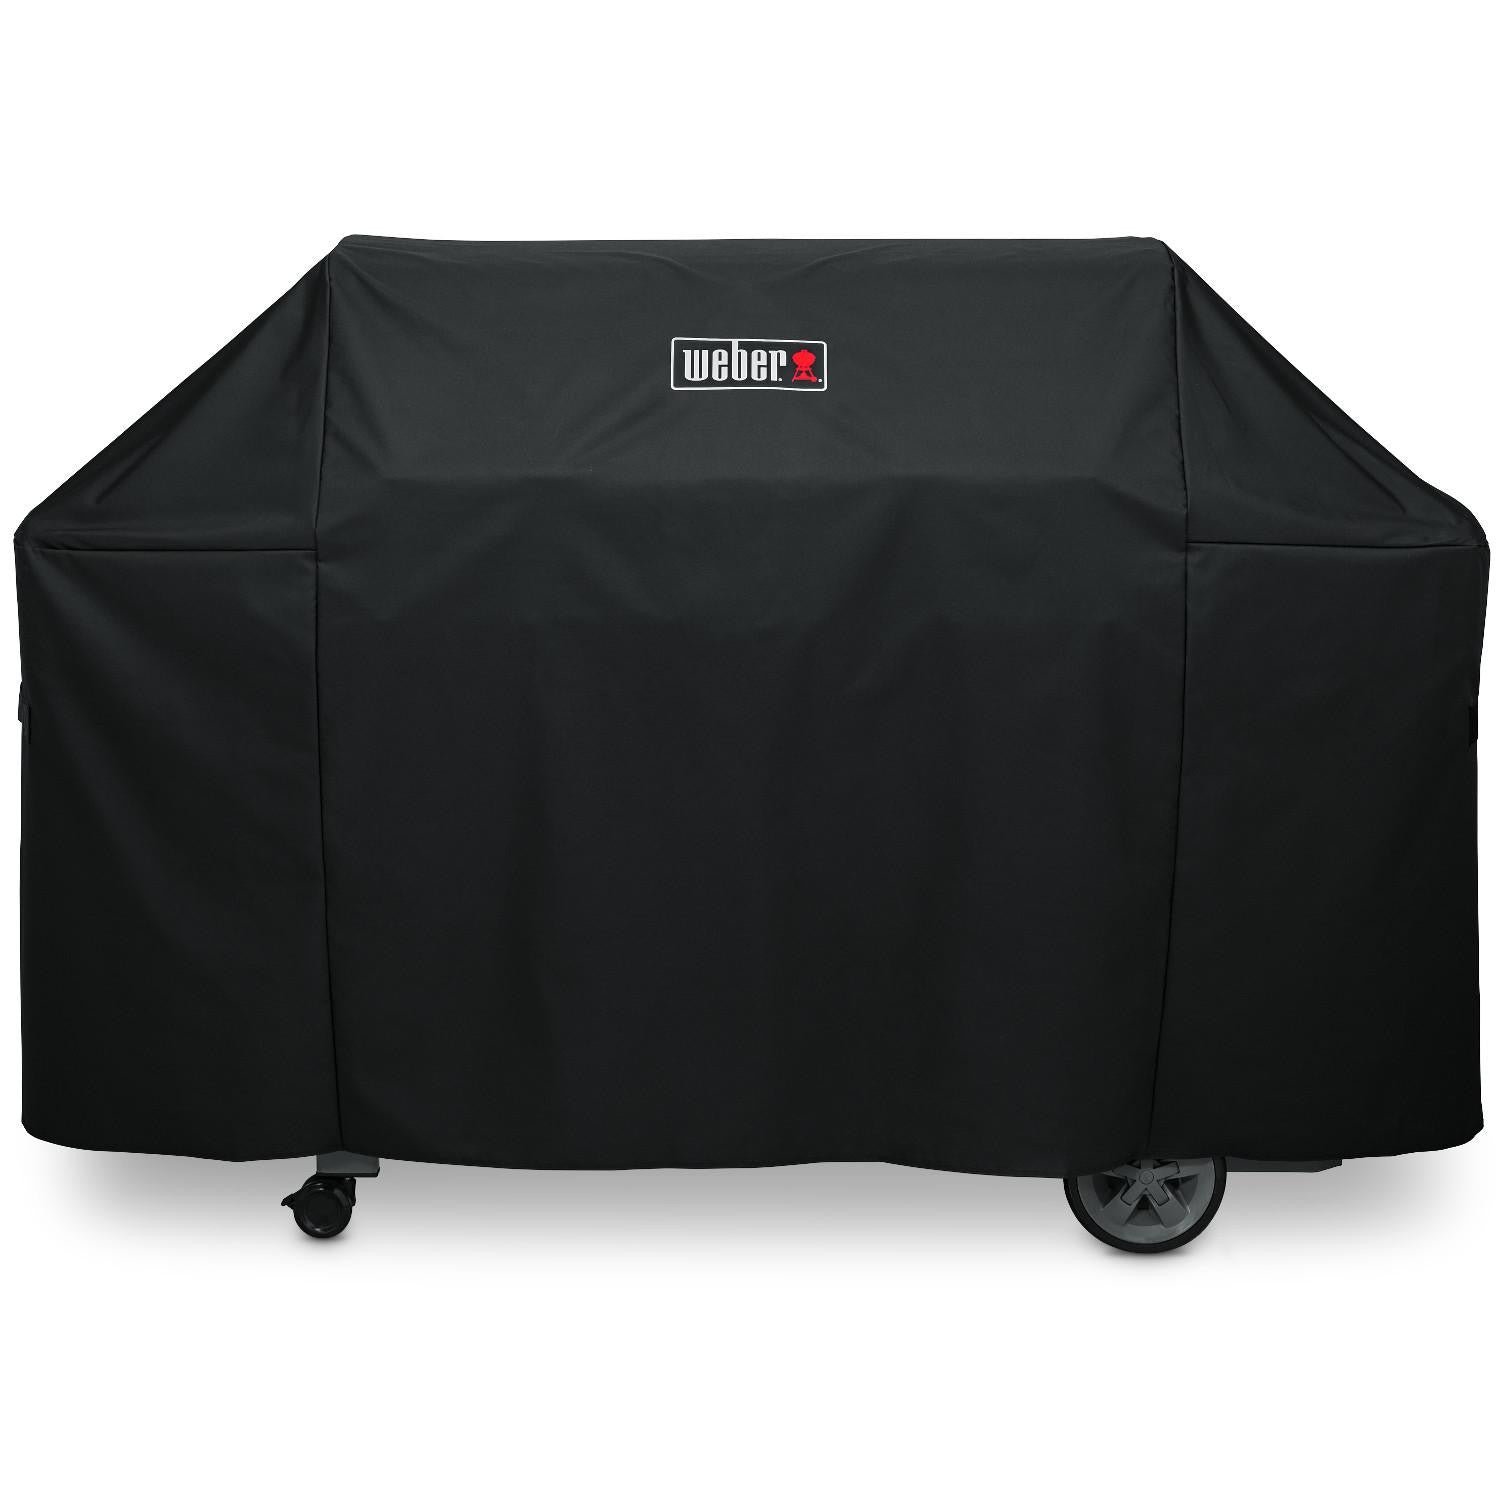 Weber 7132 Premium Polyester Genesis II 6B Grill Cover